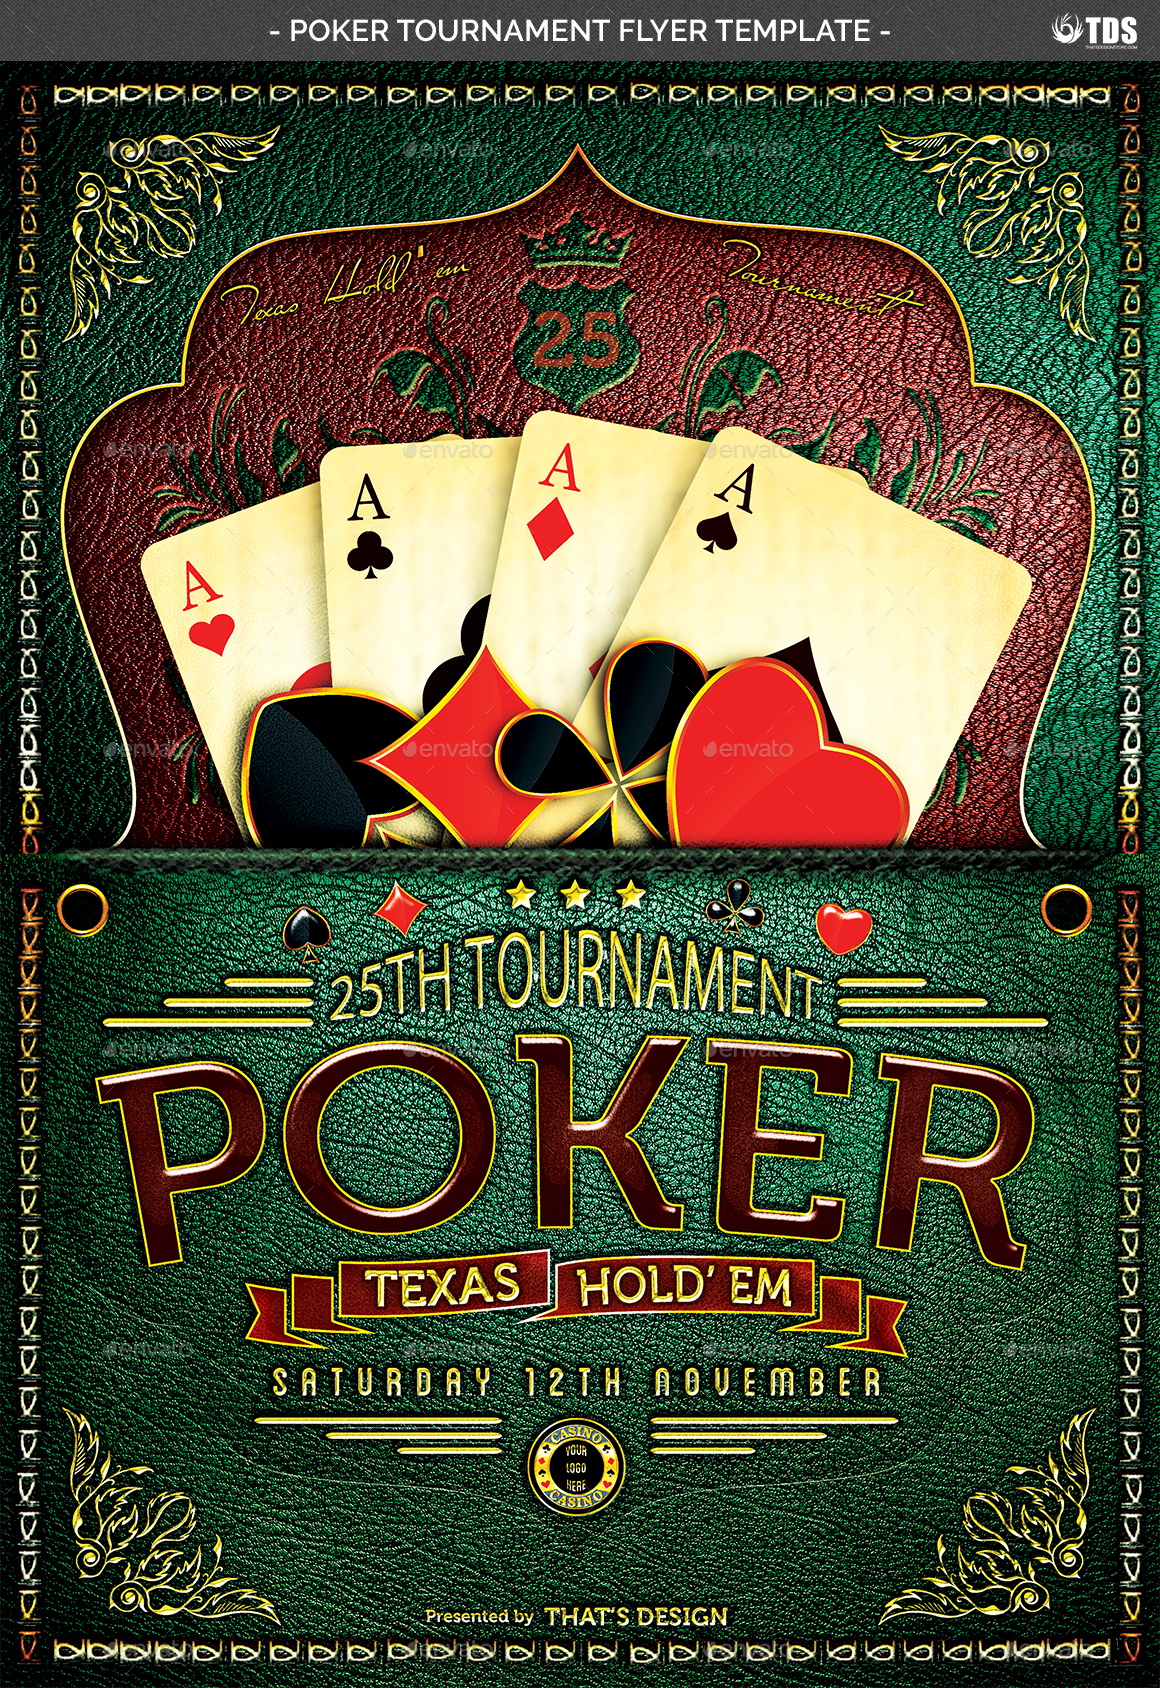 Poker Tournament Flyer Template by lou606 | GraphicRiver